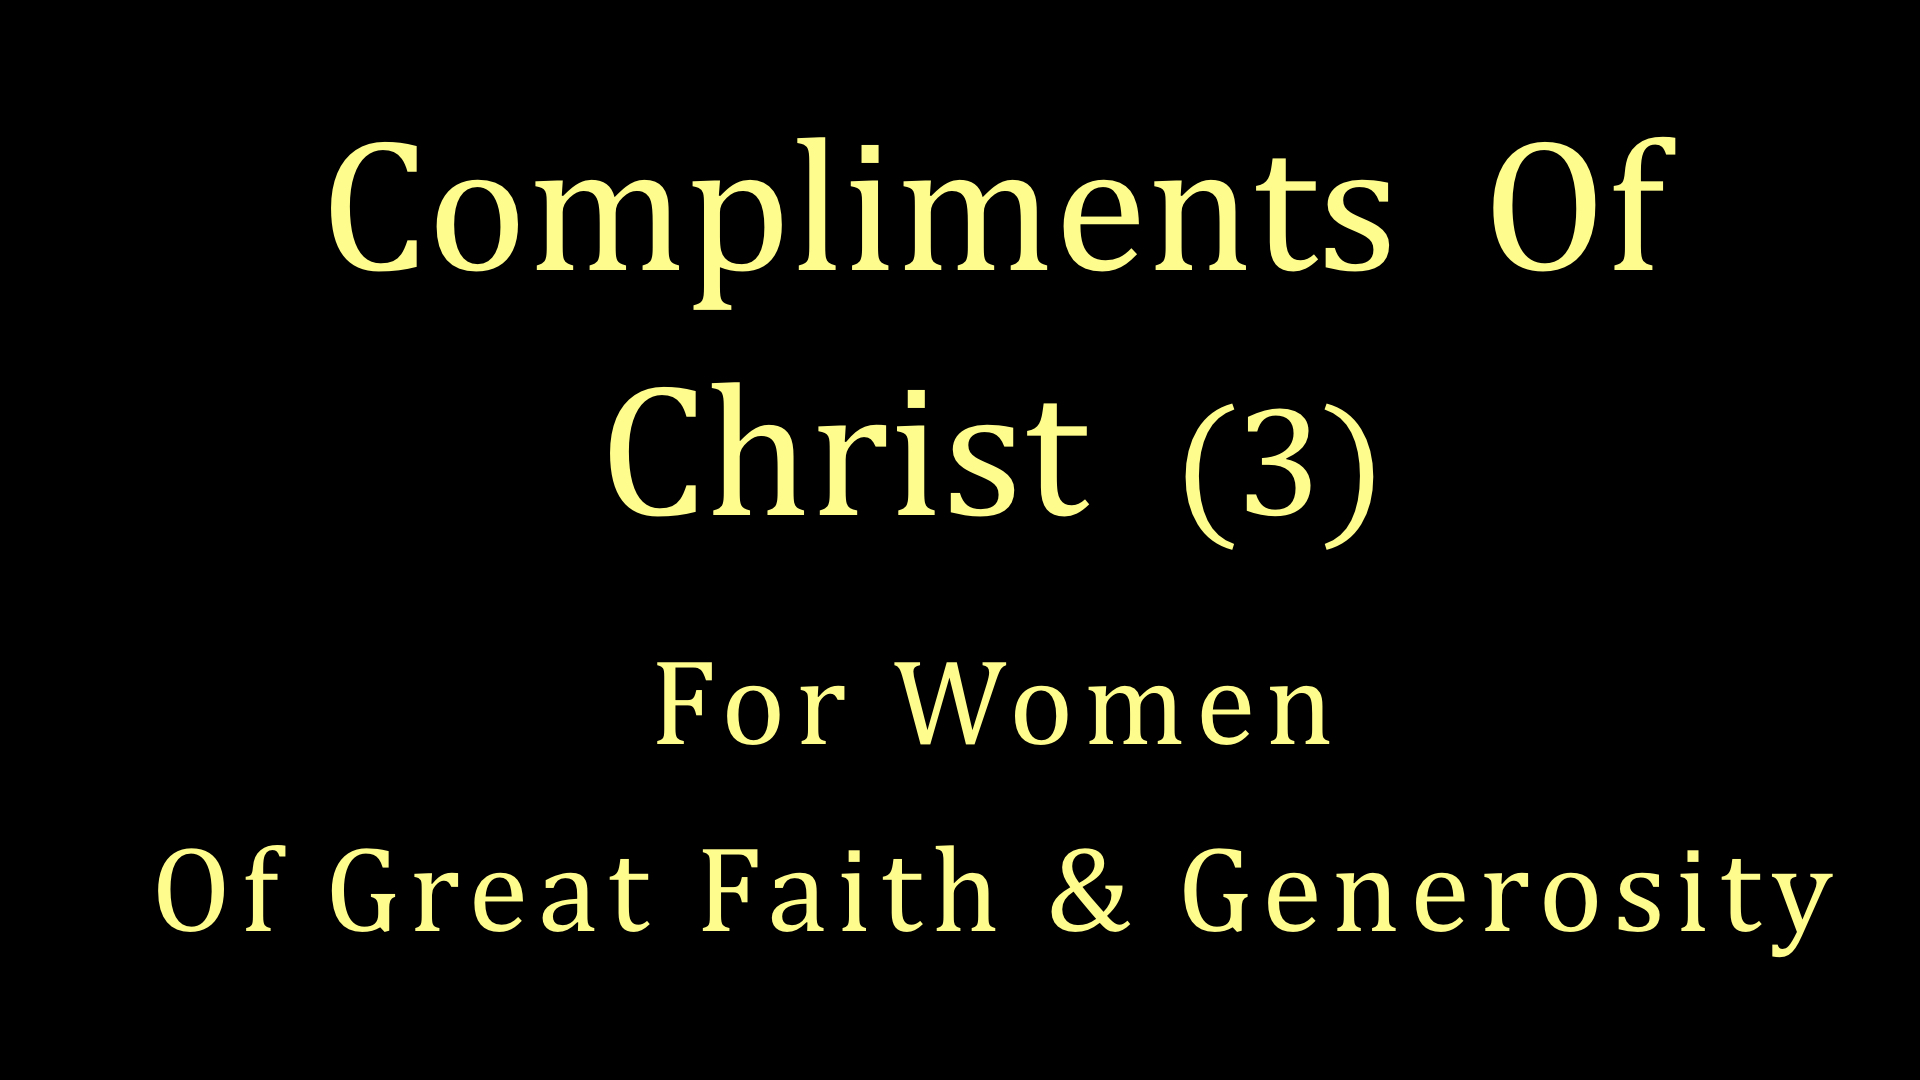 Compliments of Christ 3 - For Women Of Great Faith & Generosity WIDE.001.jpeg